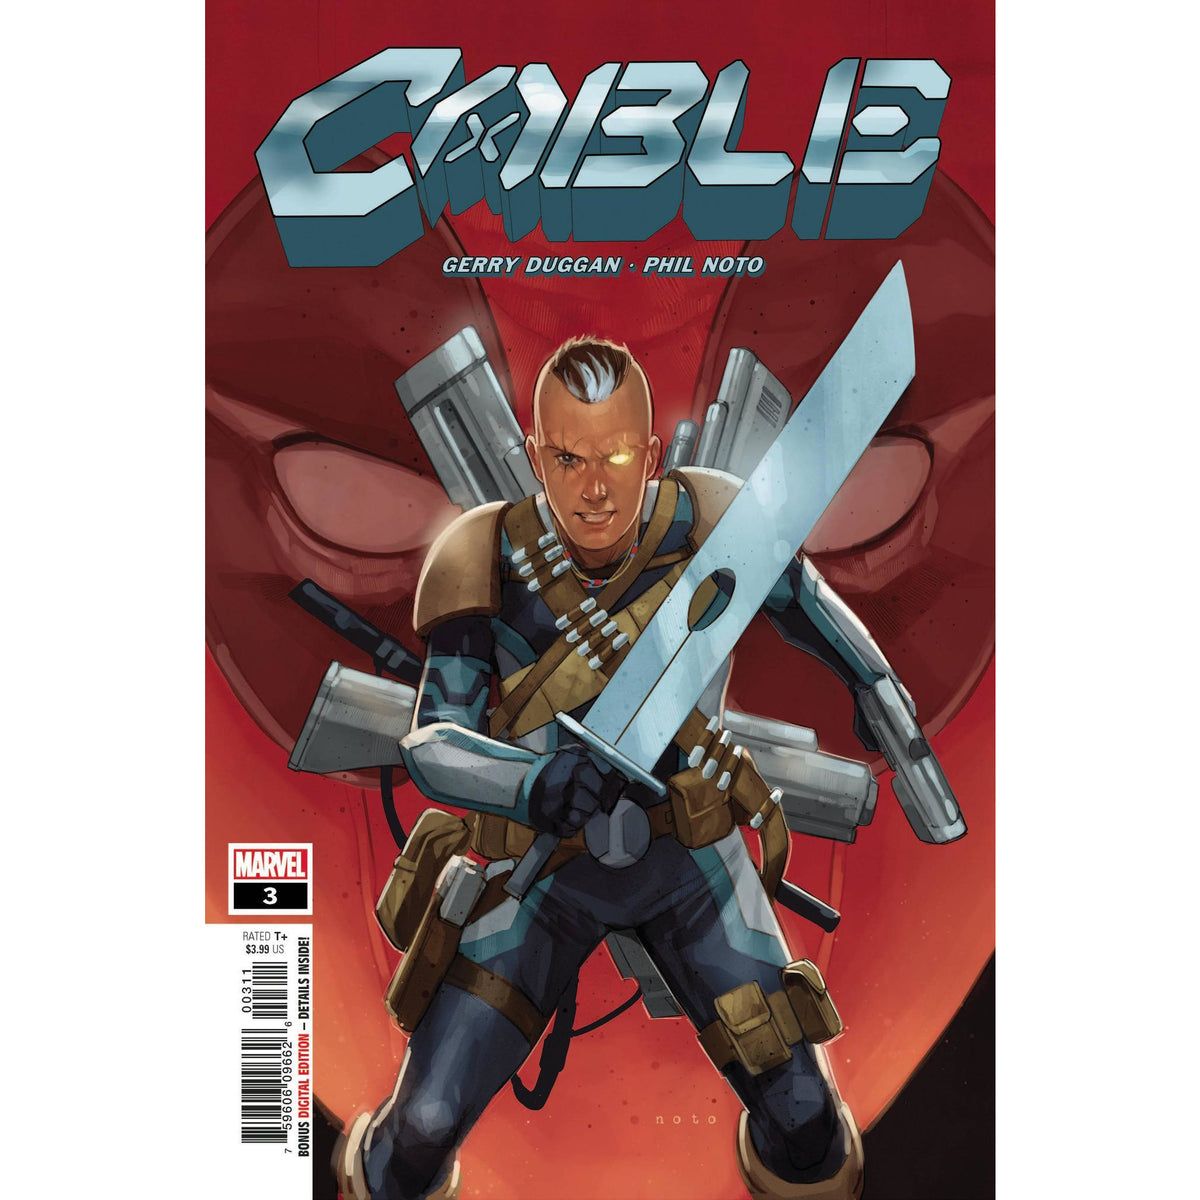 CABLE #3